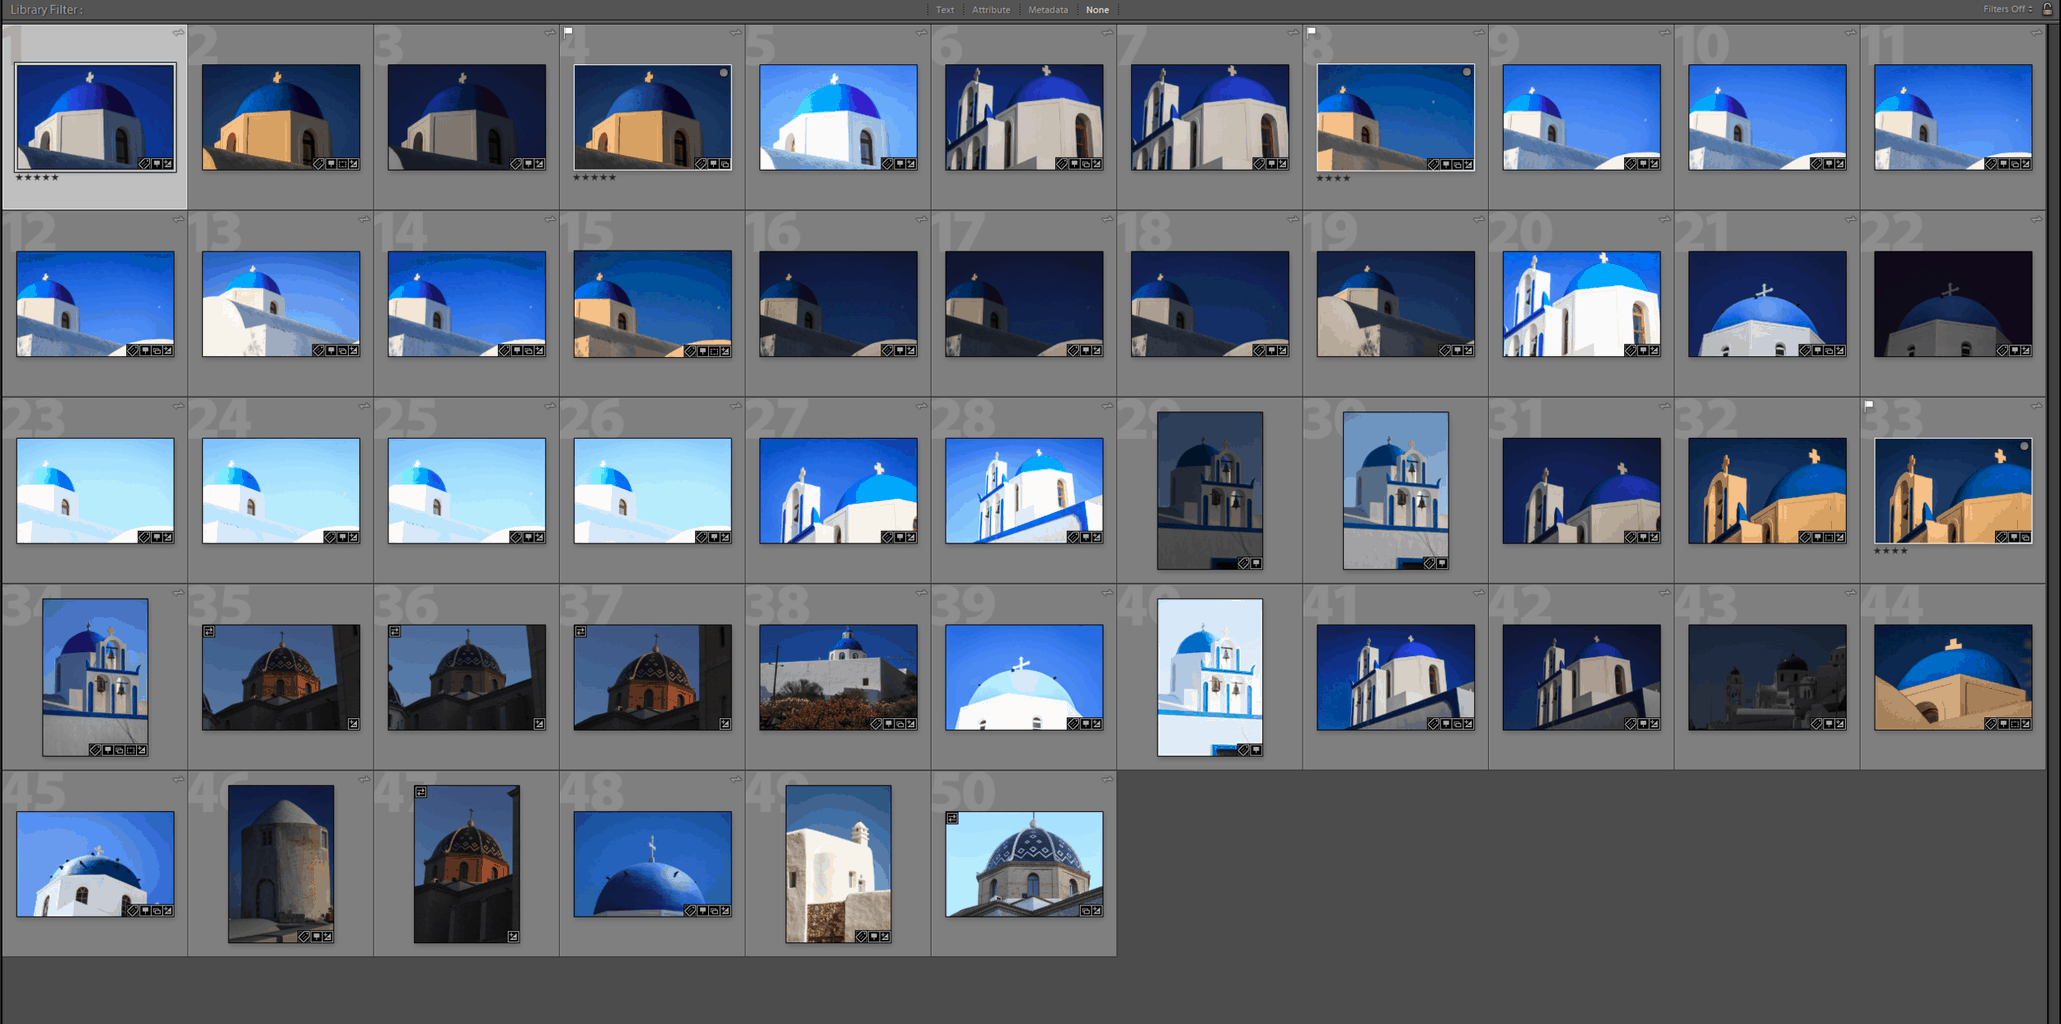 50 photos of blue domed cgurch roofs